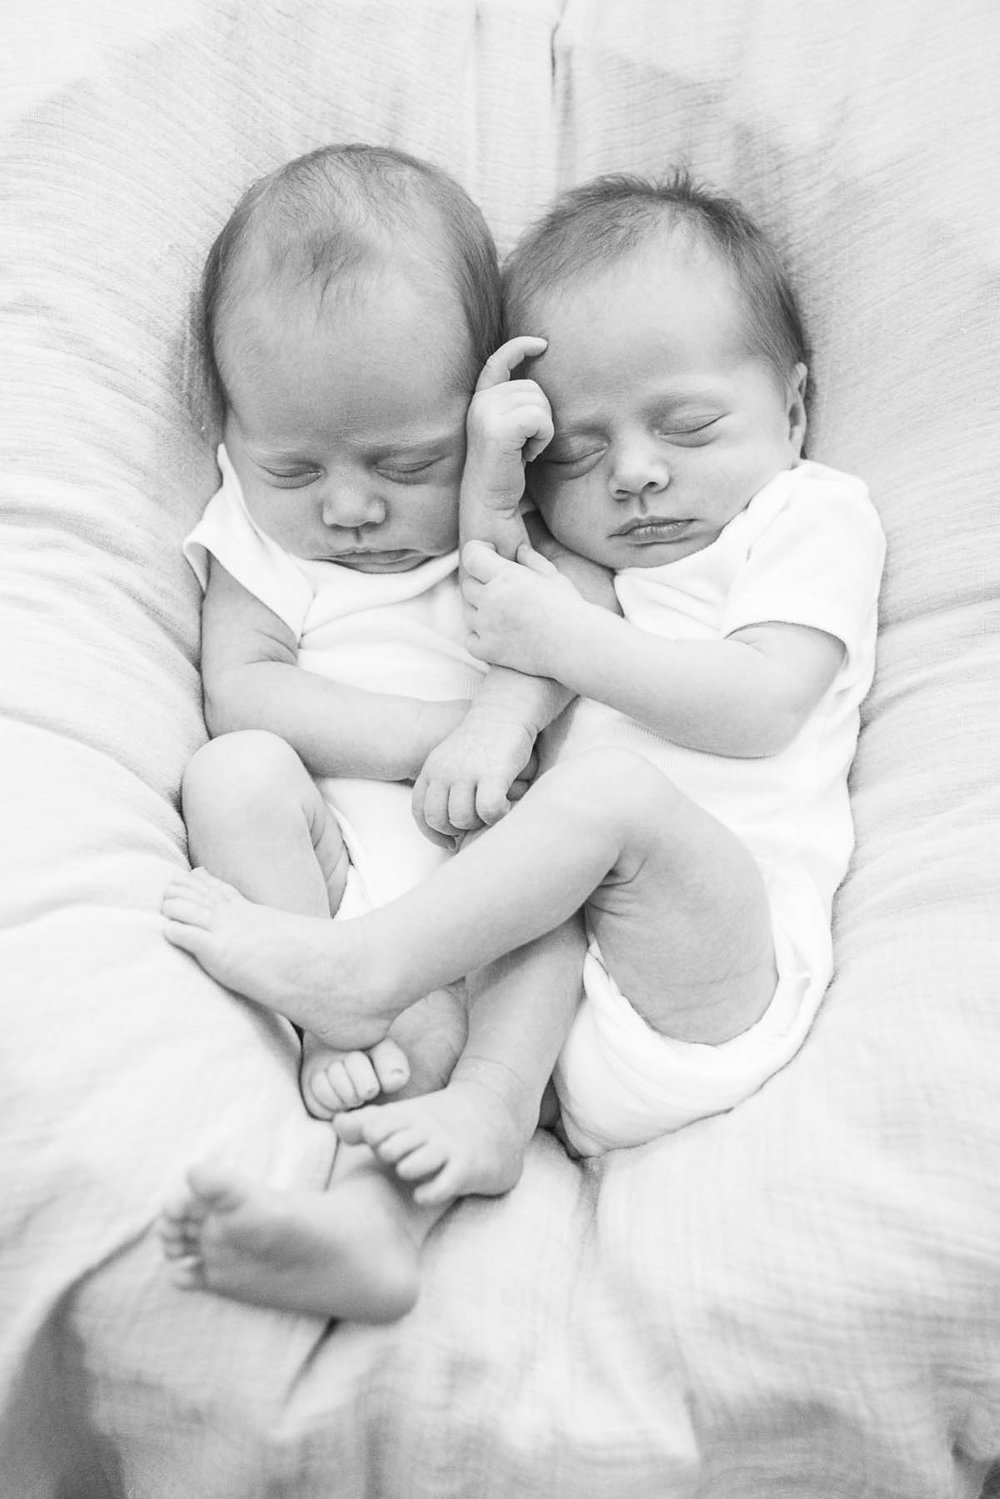 Identical twins from my newborn shoot this week.